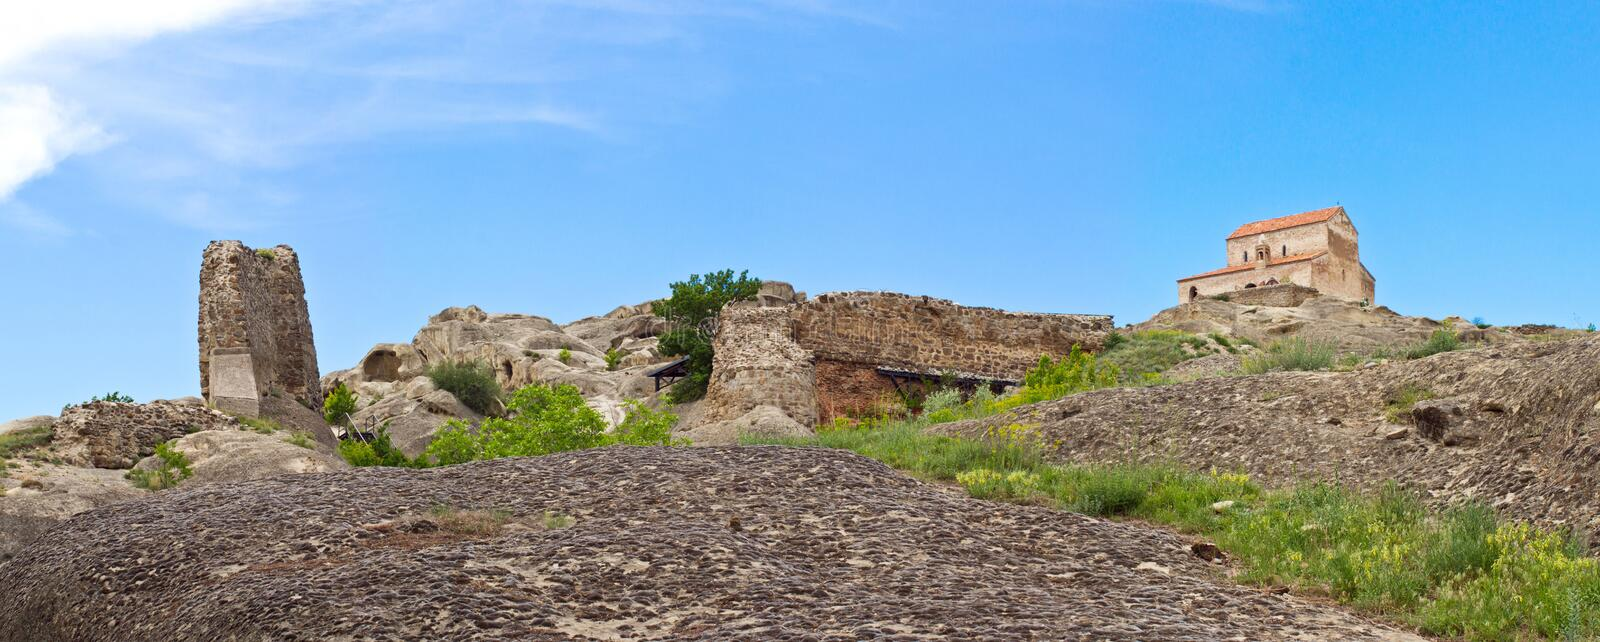 Download Panorama  Prehistoric Ruins Of Cave-dwelling Town Stock Photo - Image: 25048058